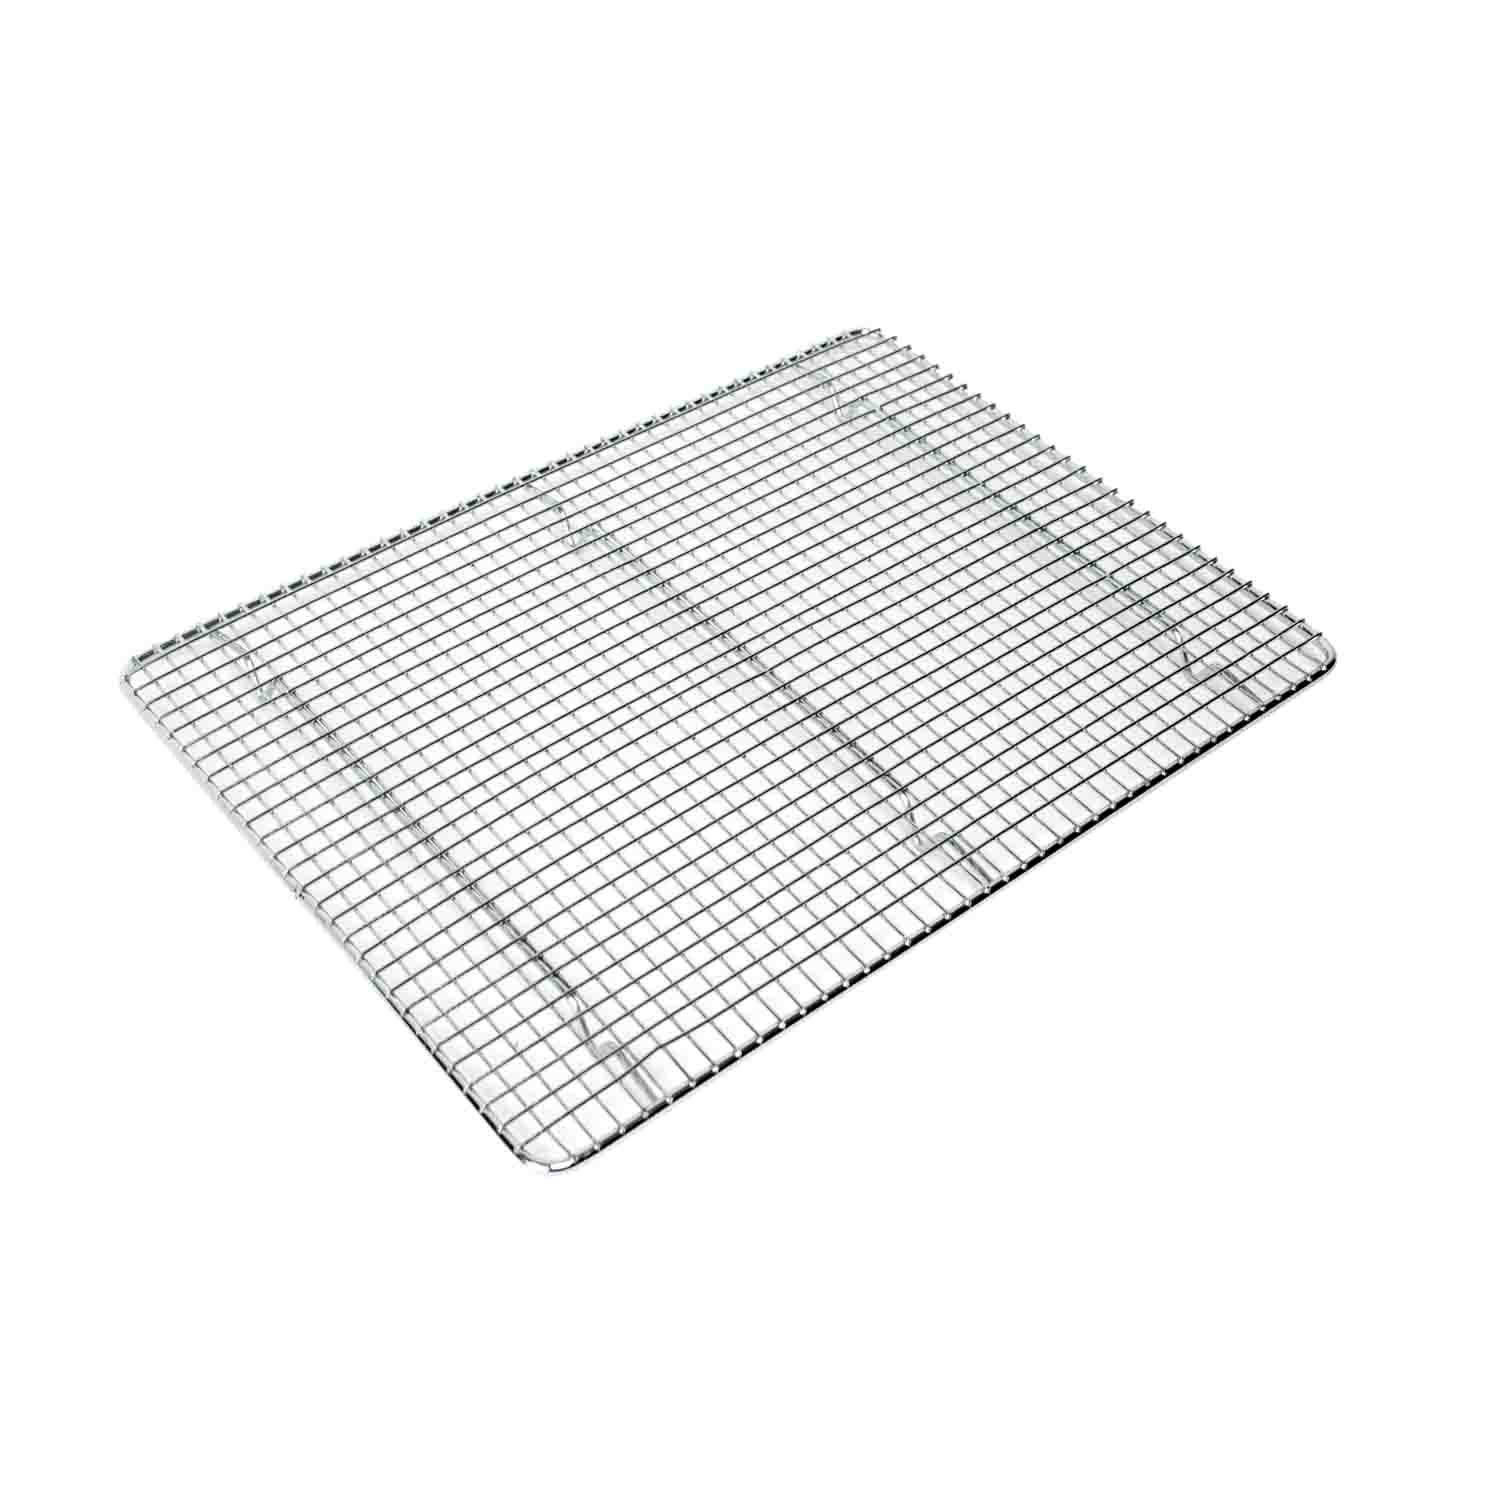 Excellante Icing/Cooling Rack with Built-In Feet, Chrome, 16.125 by 24-3/4-Inch by Excellanté